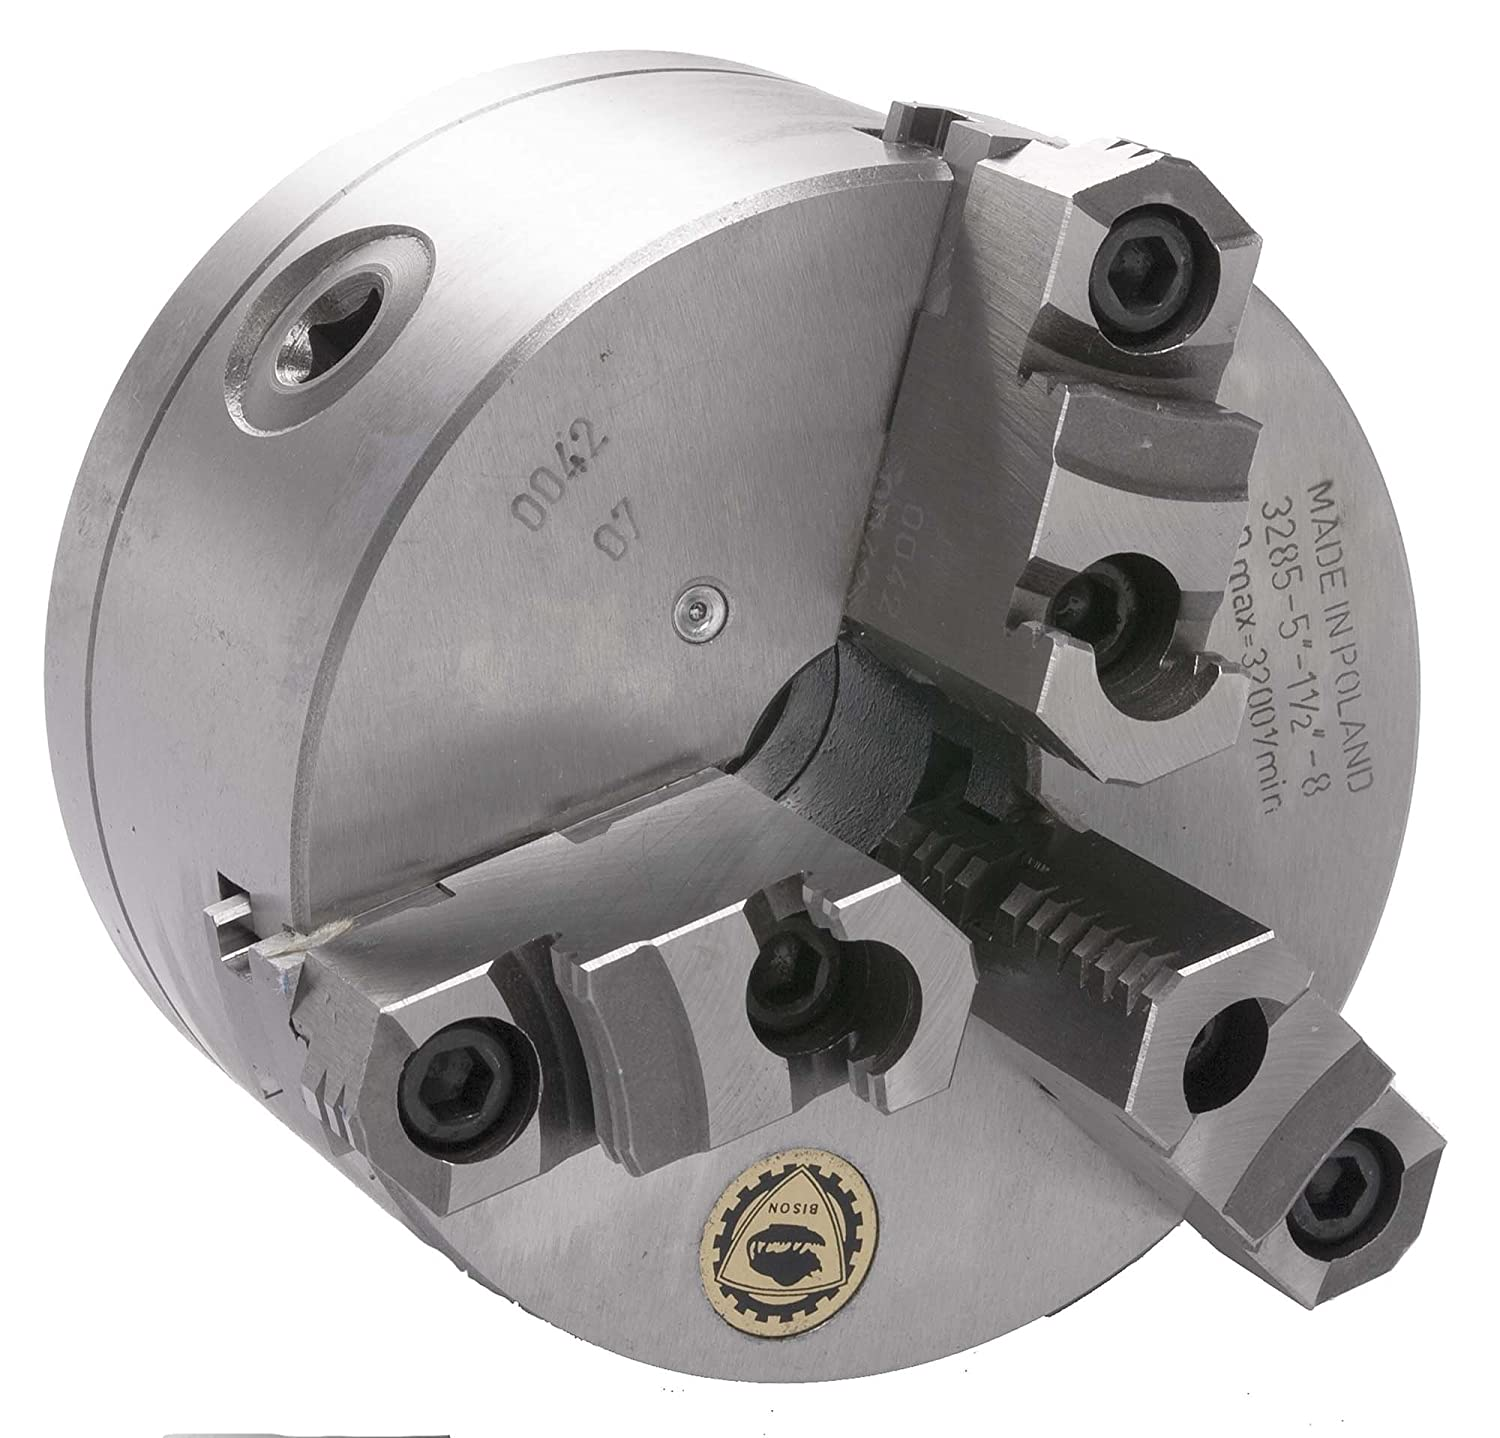 Award BISON Universal with Threaded Back Chuck 5